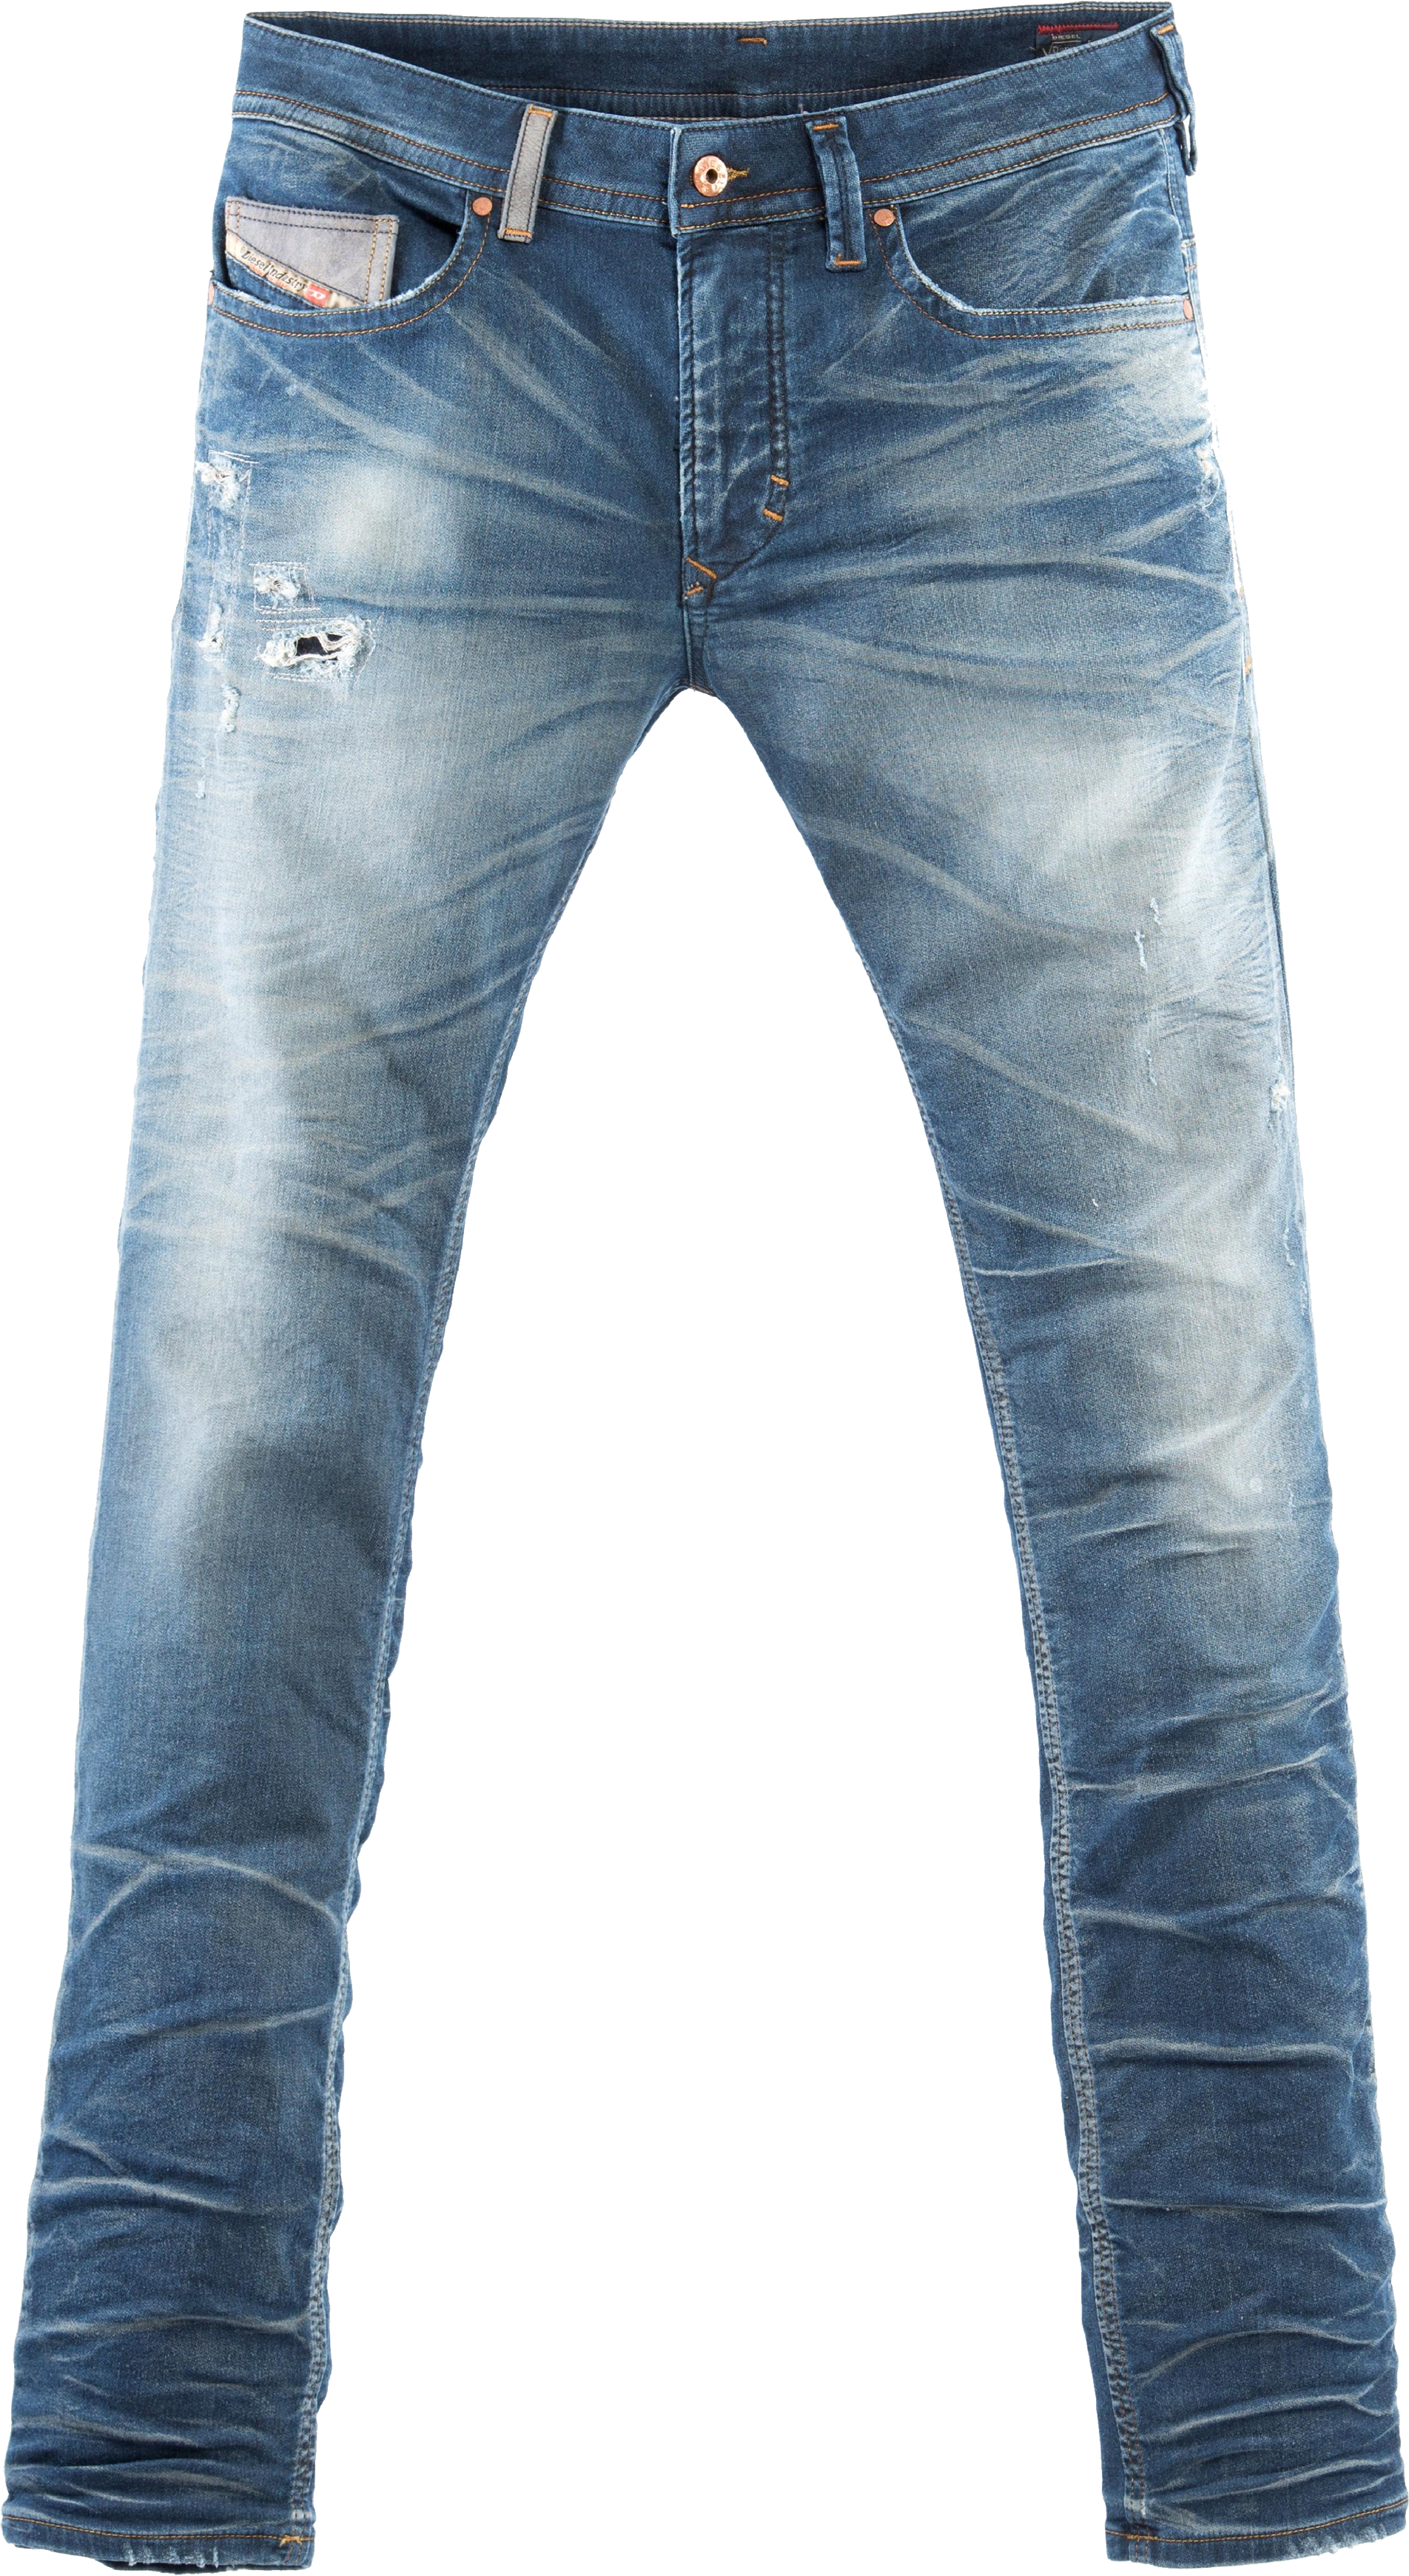 Menu0027s jeans PNG image - Trousers PNG HD